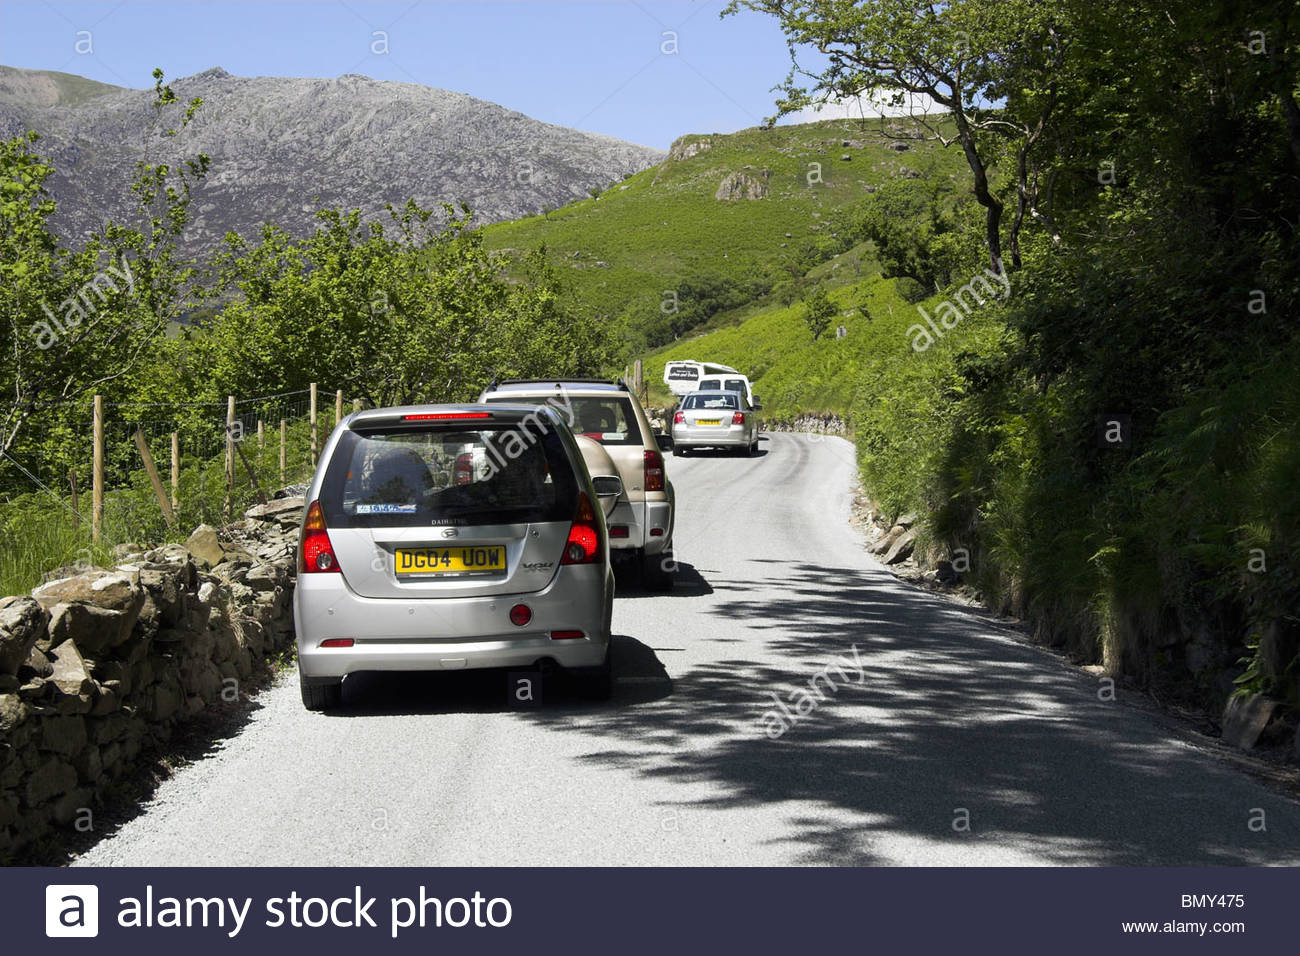 Congestion on the A498 road in Snowdonia National Park, Gwynedd, north Wales, UK. - Stock Image